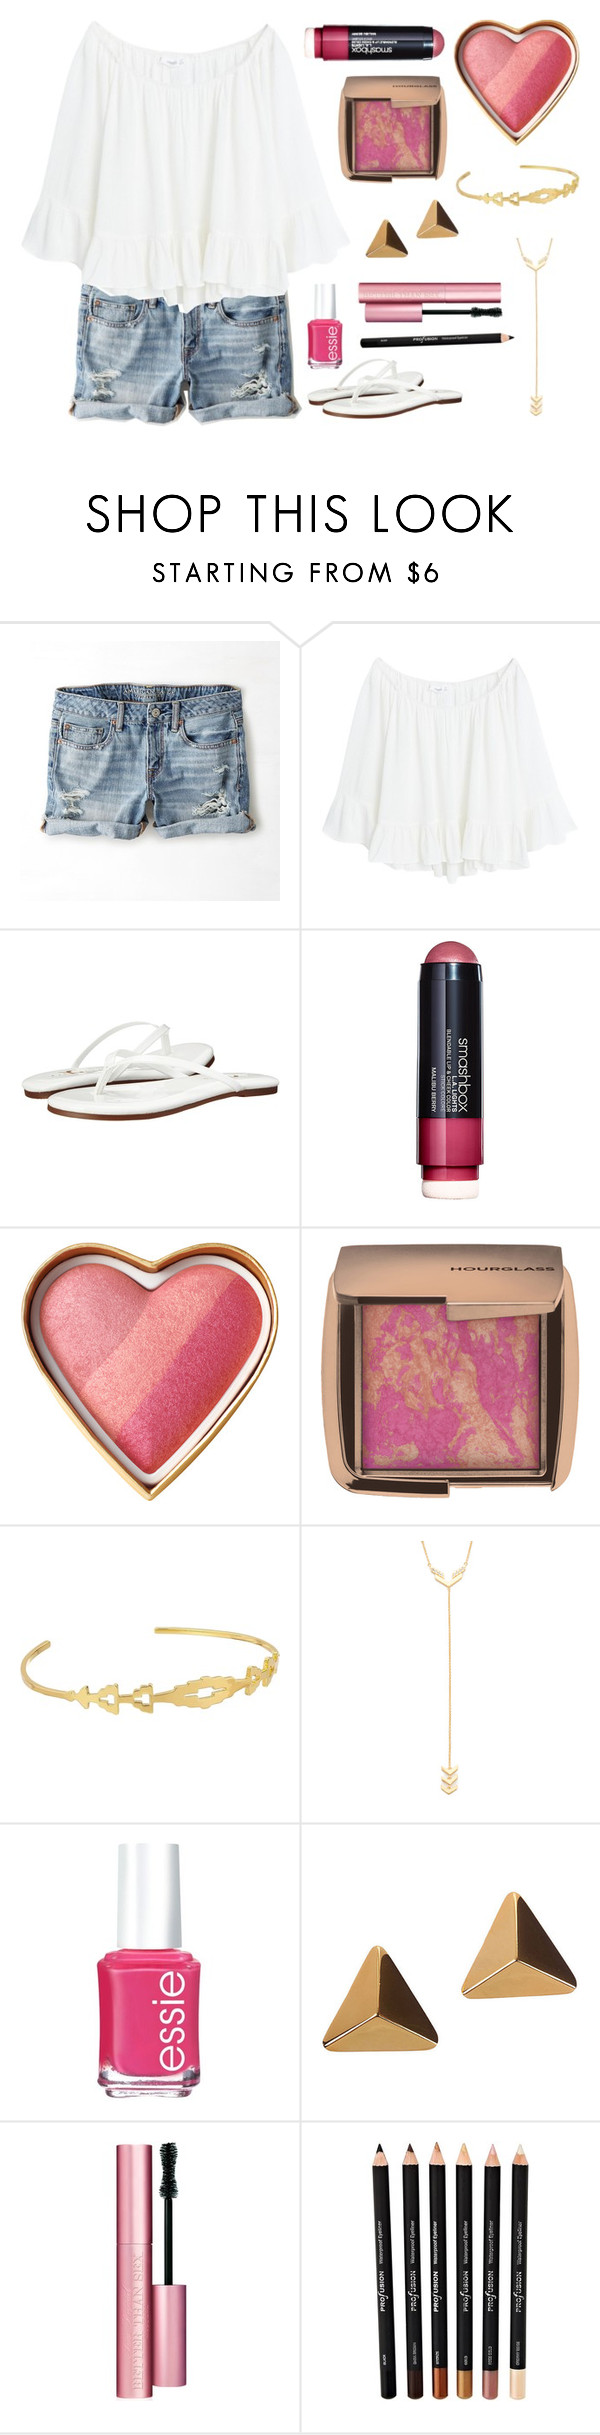 """Untitled #268"" by fashion4life11 ❤ liked on Polyvore featuring American Eagle Outfitters, MANGO, Yosi Samra, Smashbox, Hourglass Cosmetics, Gorjana, Essie and Too Faced Cosmetics"